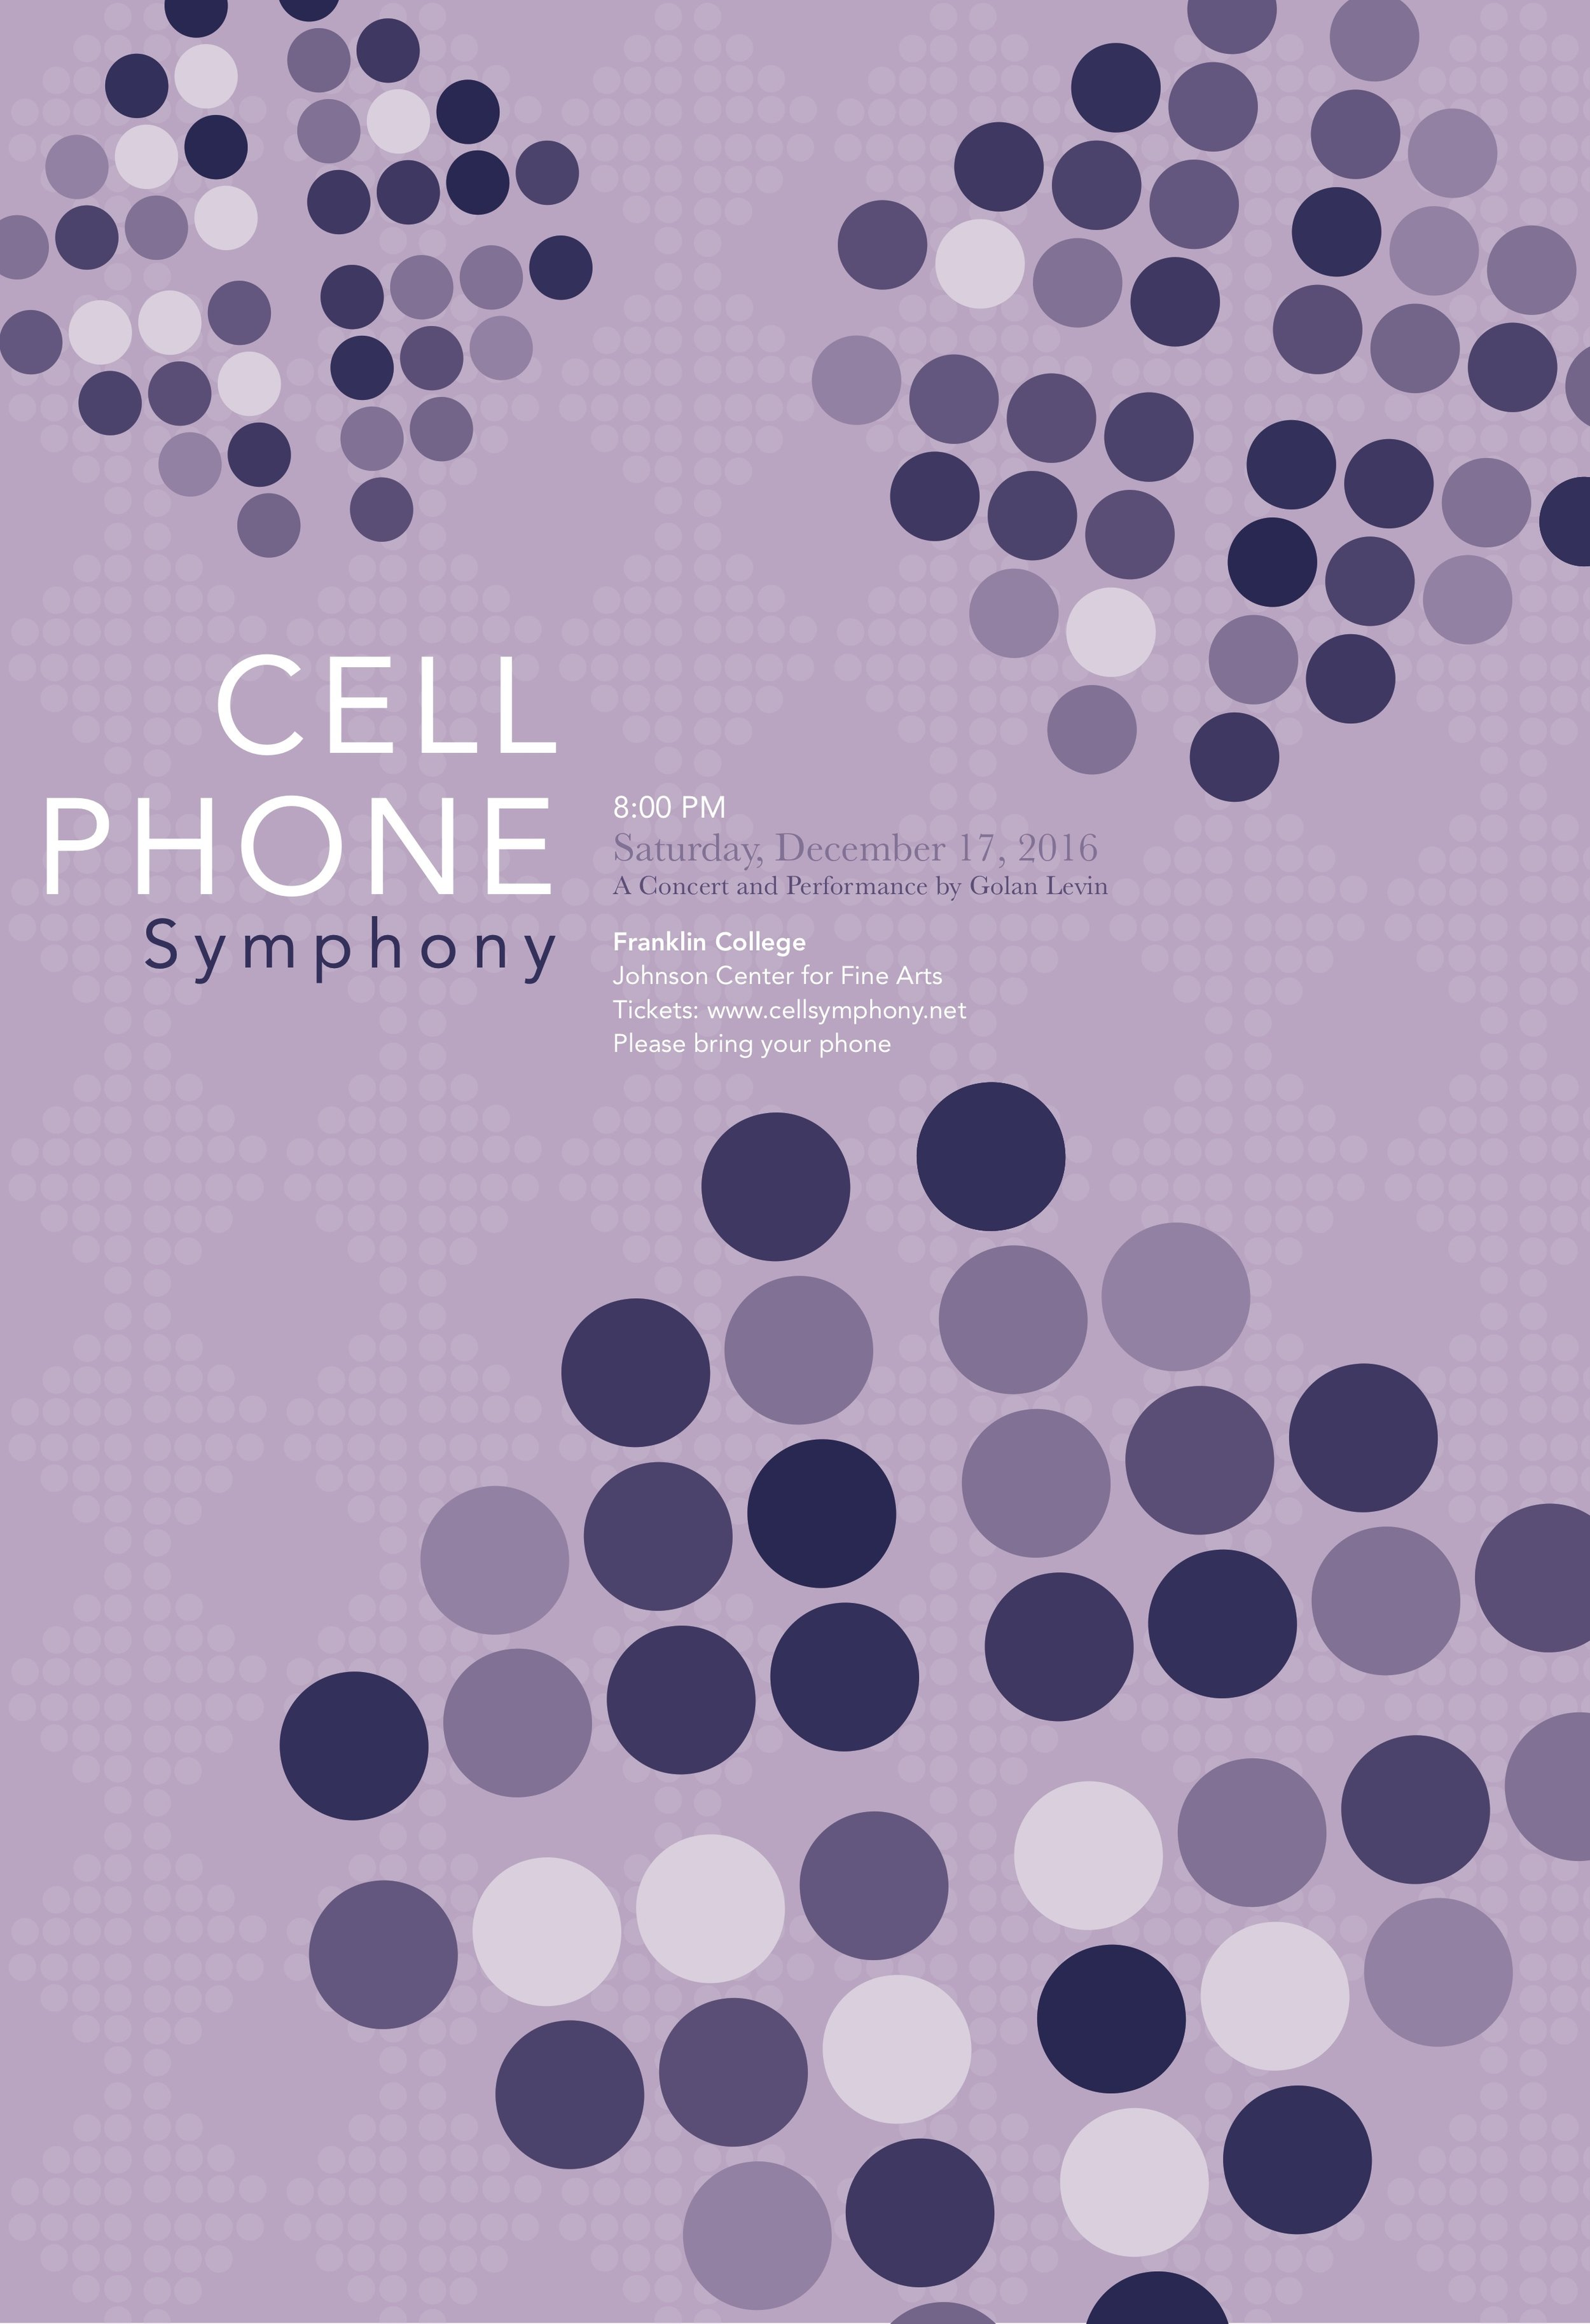 Cell phone symphony poster